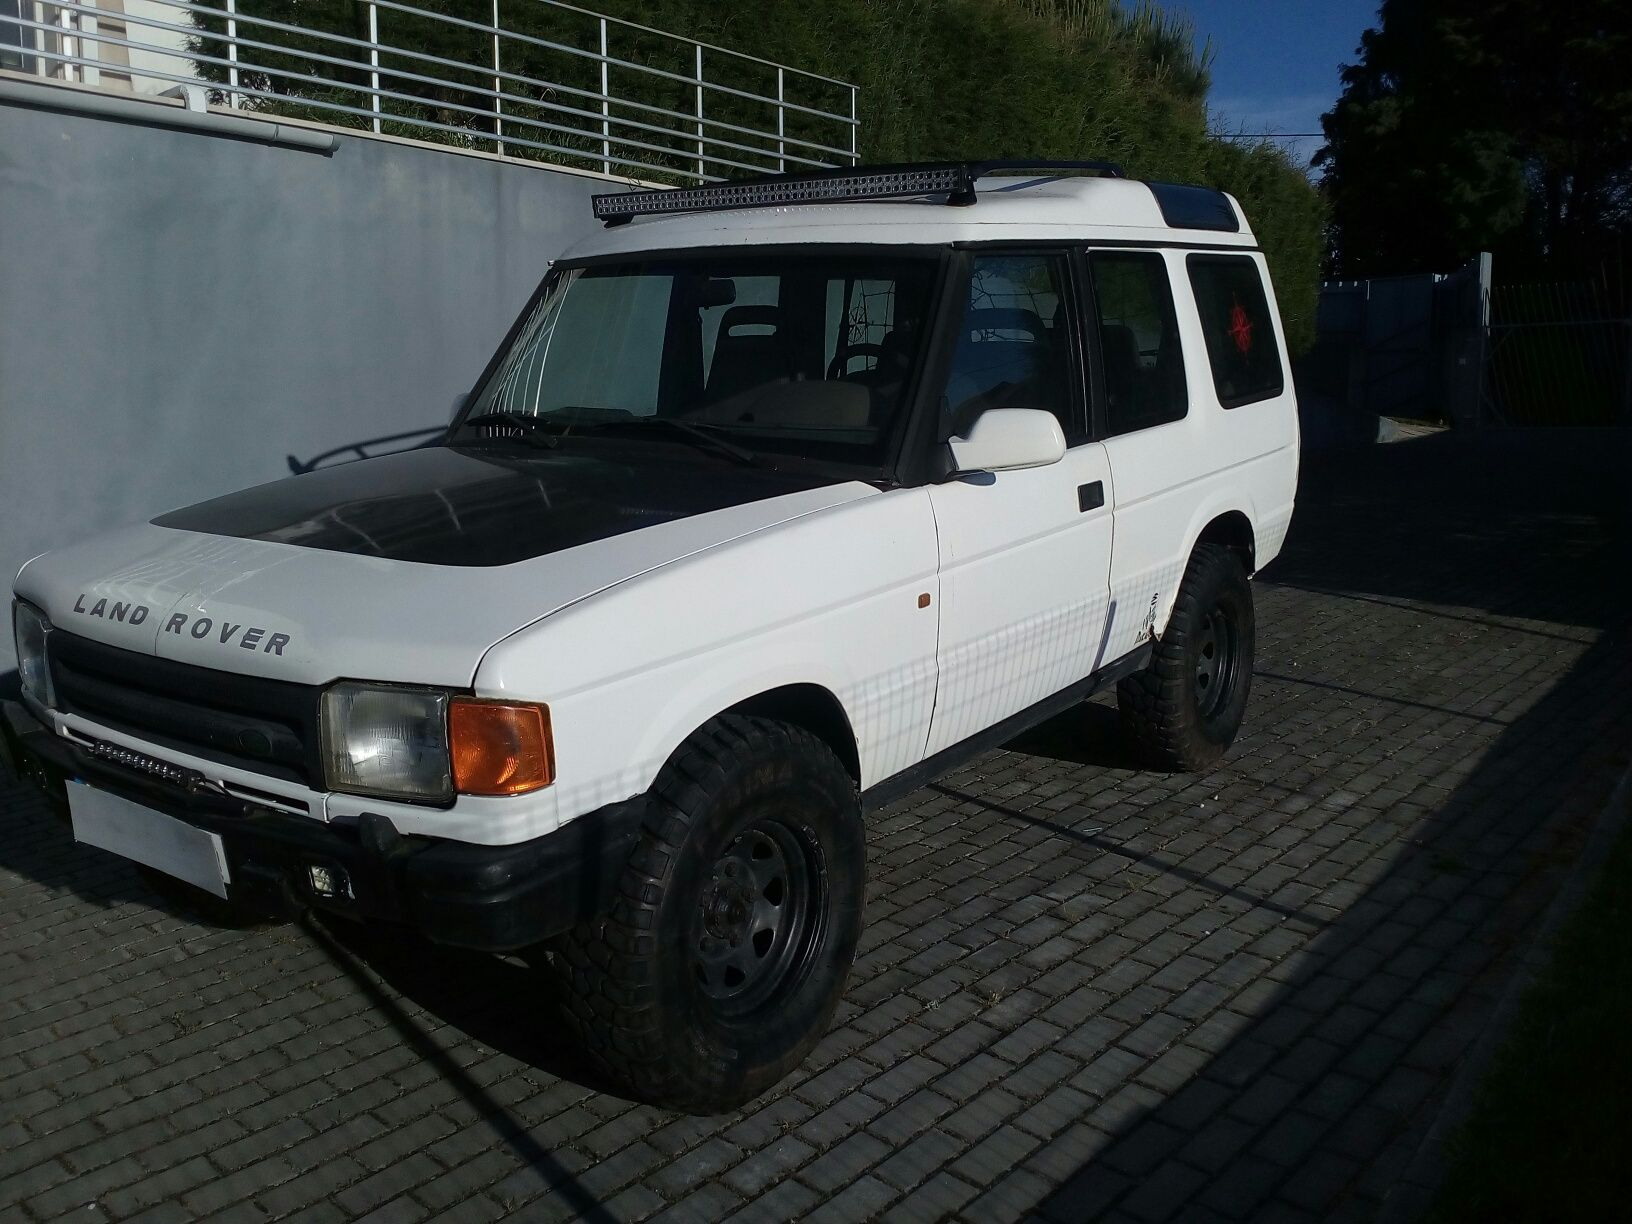 Land Rover DISCOVERY 300 tdi EXTRAS